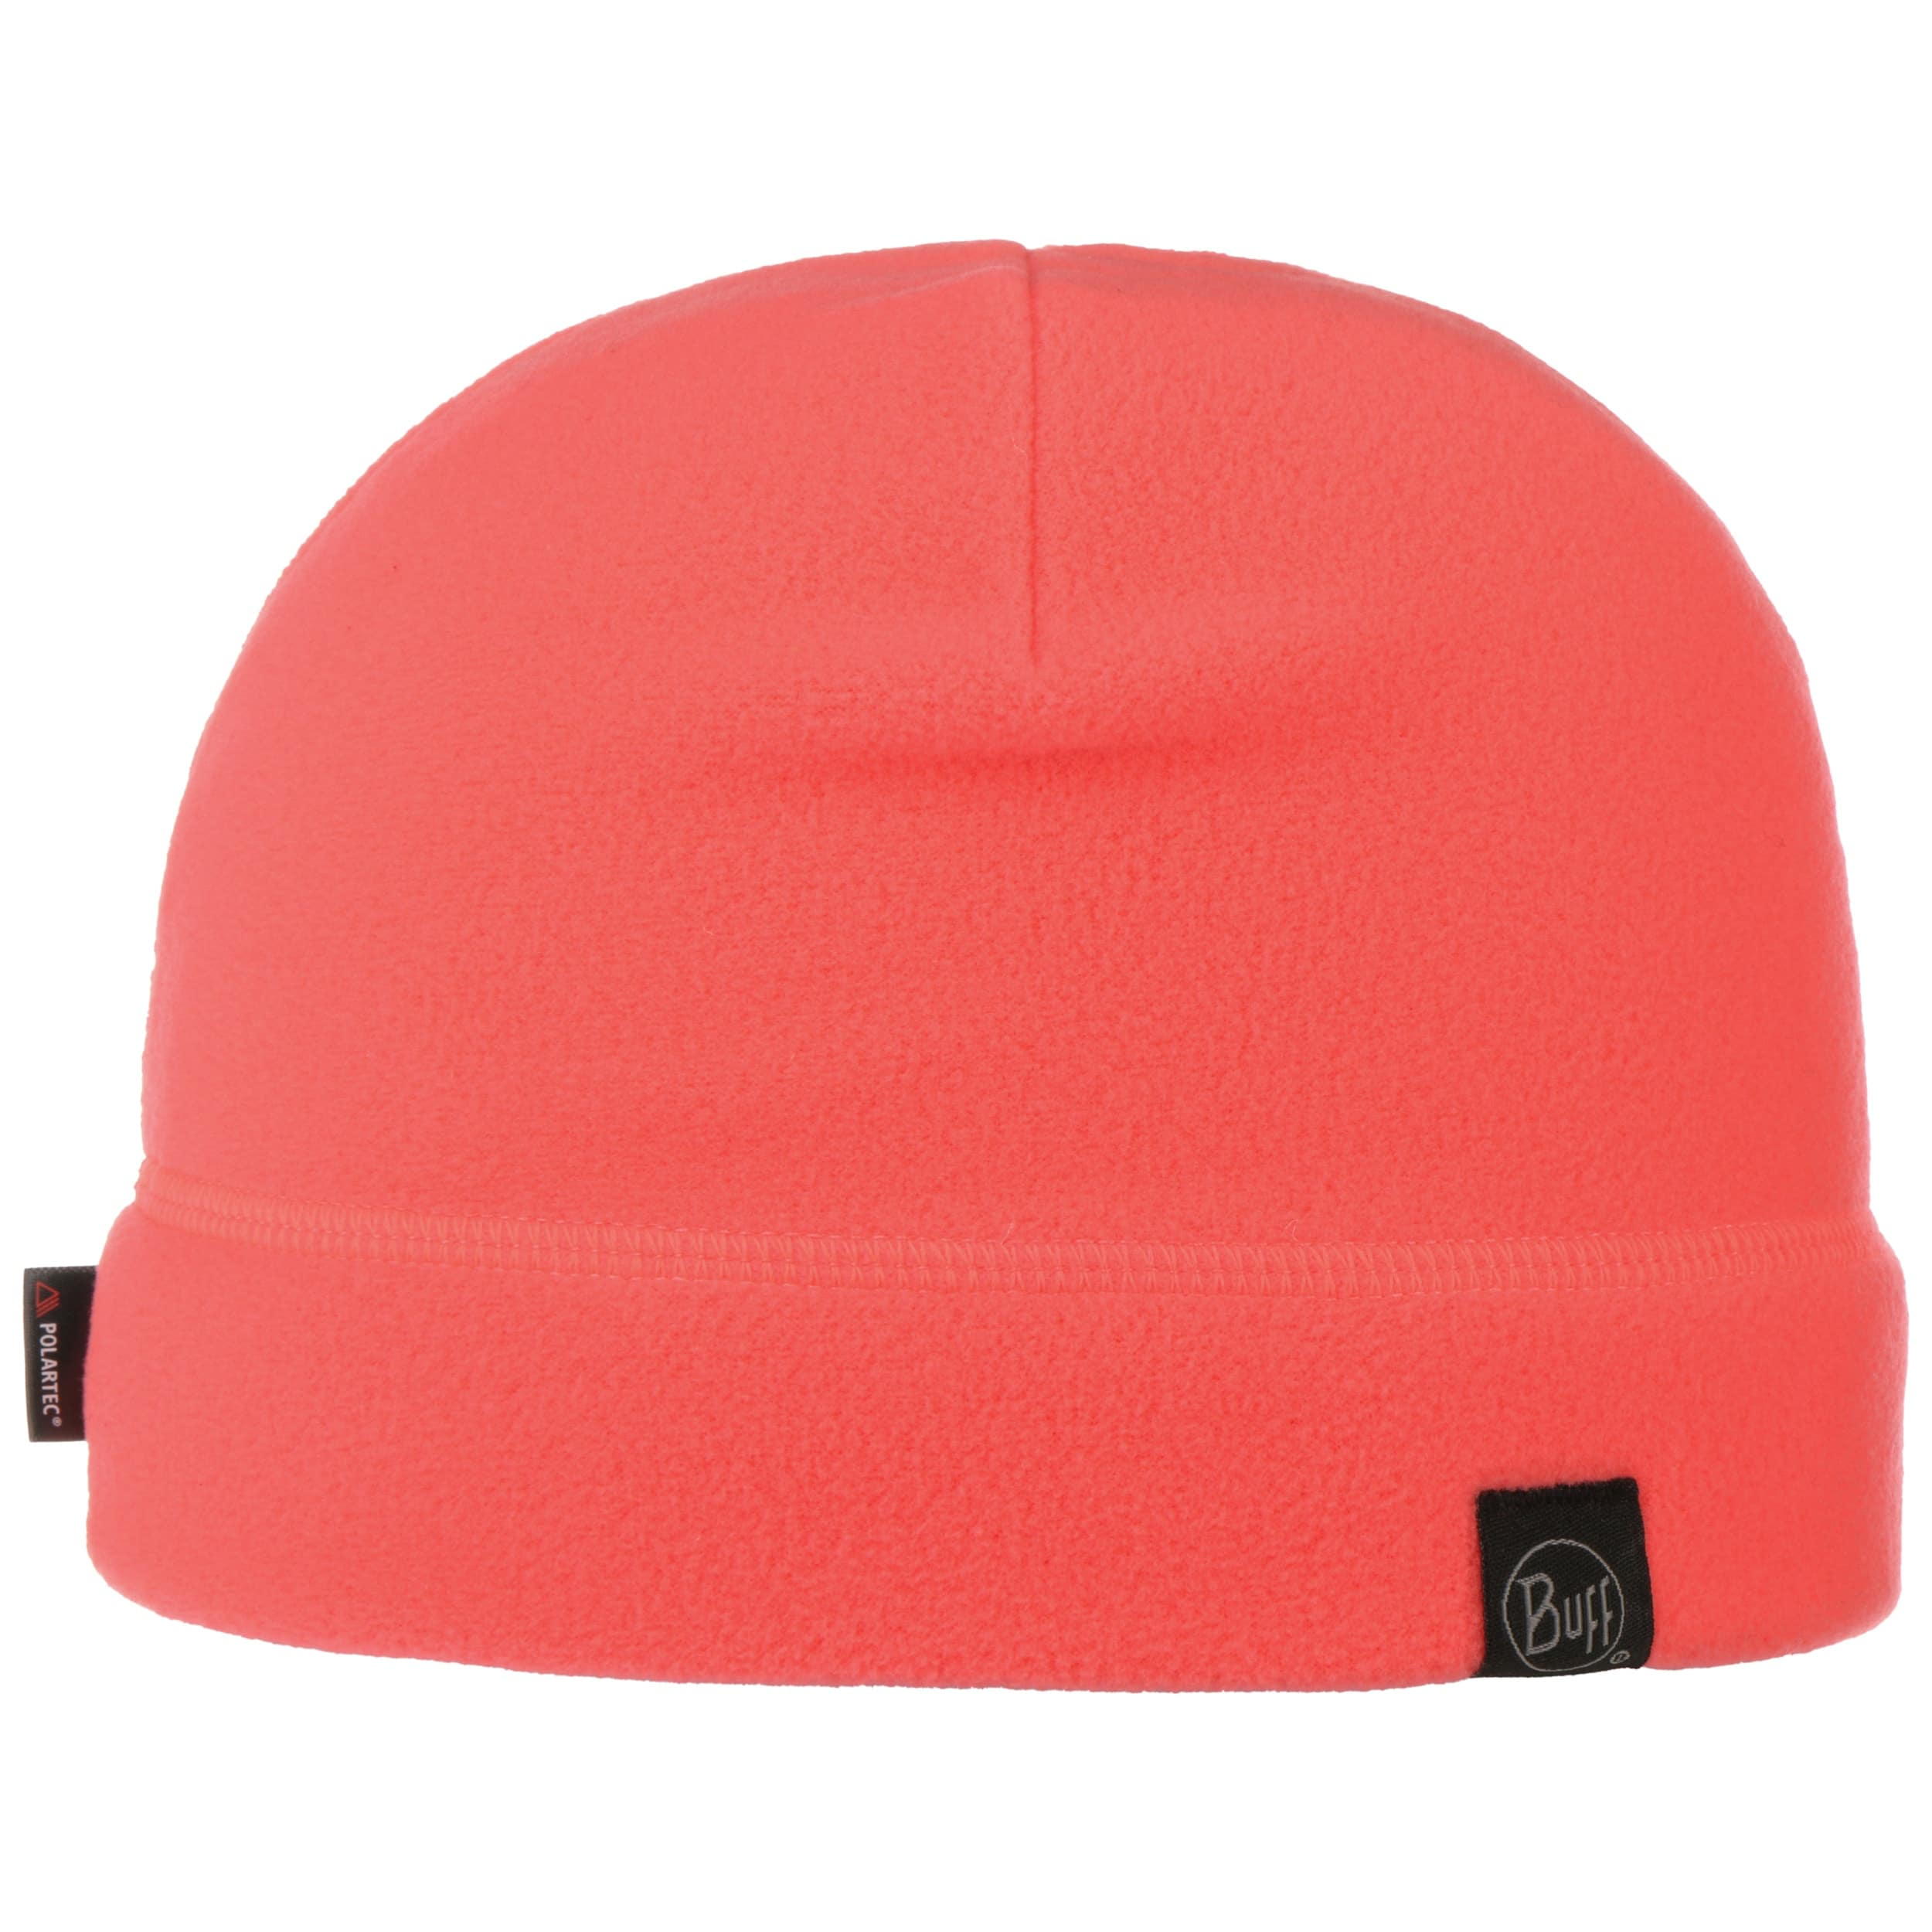 Solid Coral Pink Polar Beanie Hat By BUFF, GBP 15,95